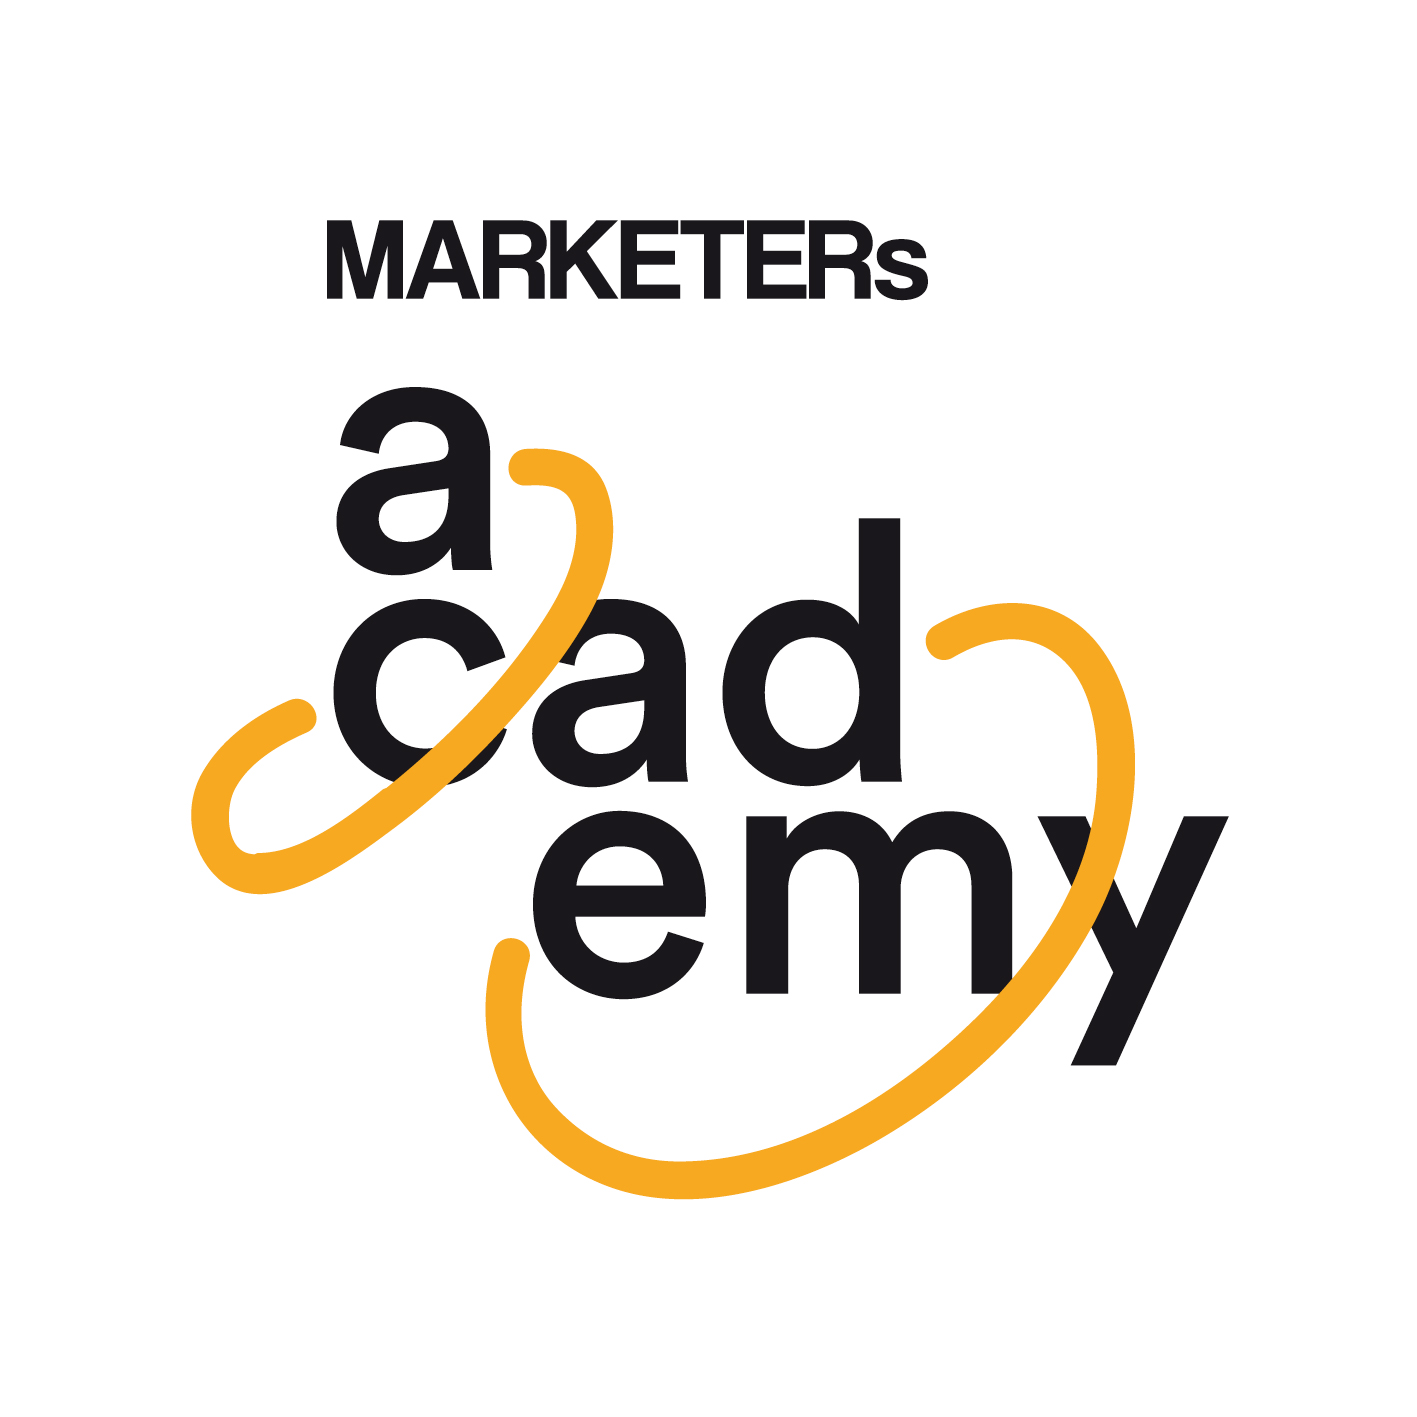 MARKETERs Academy